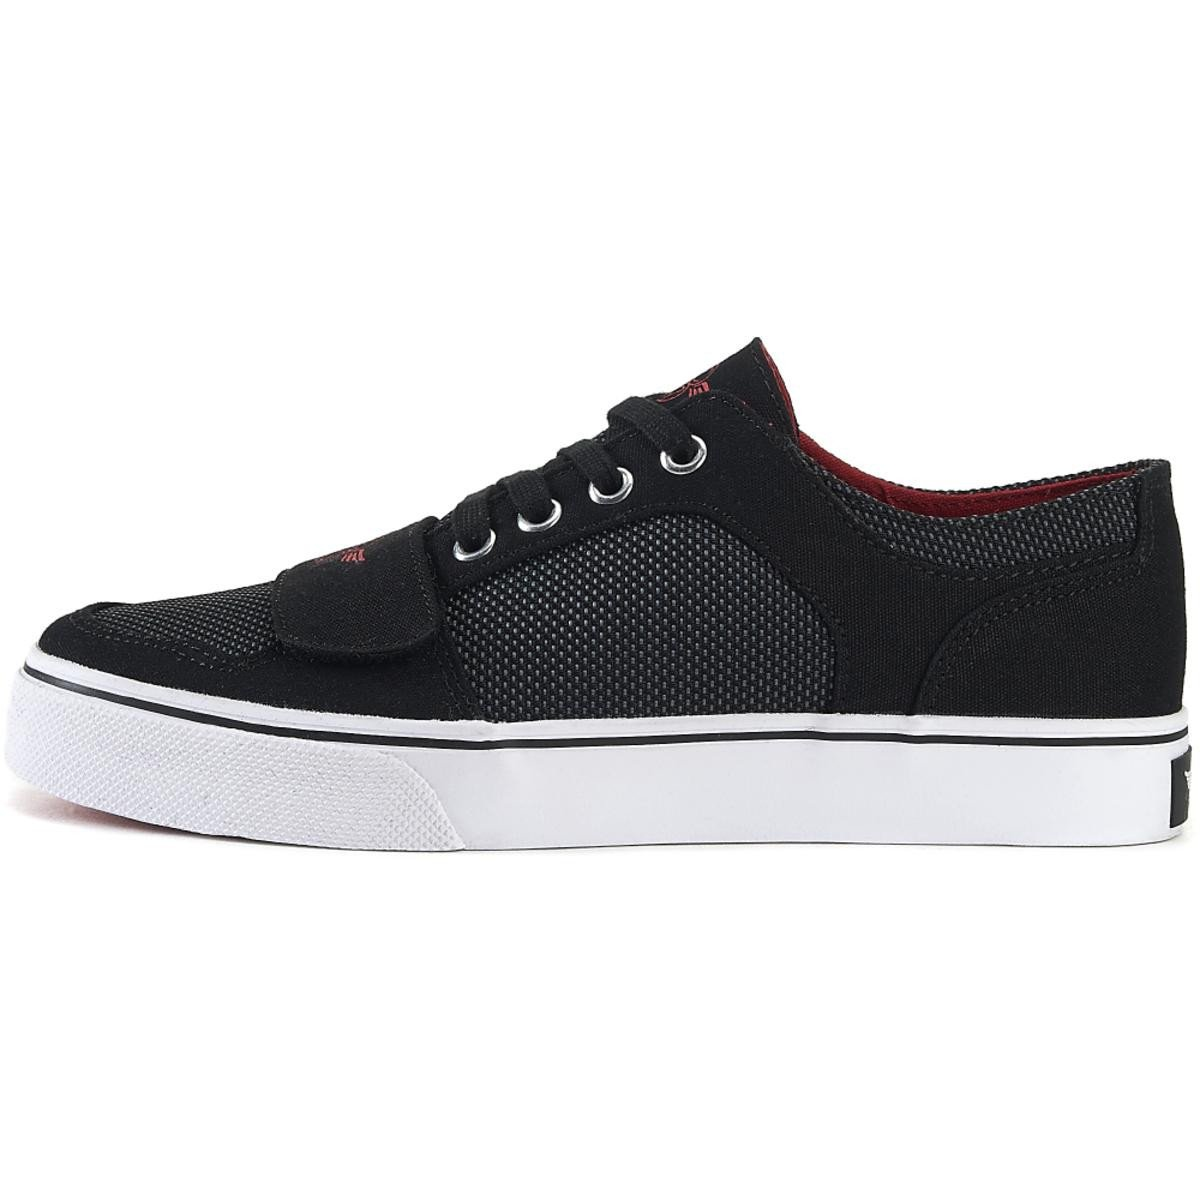 Creative Recreation for Men: GS Cesario Lo XVI Black Sneakers